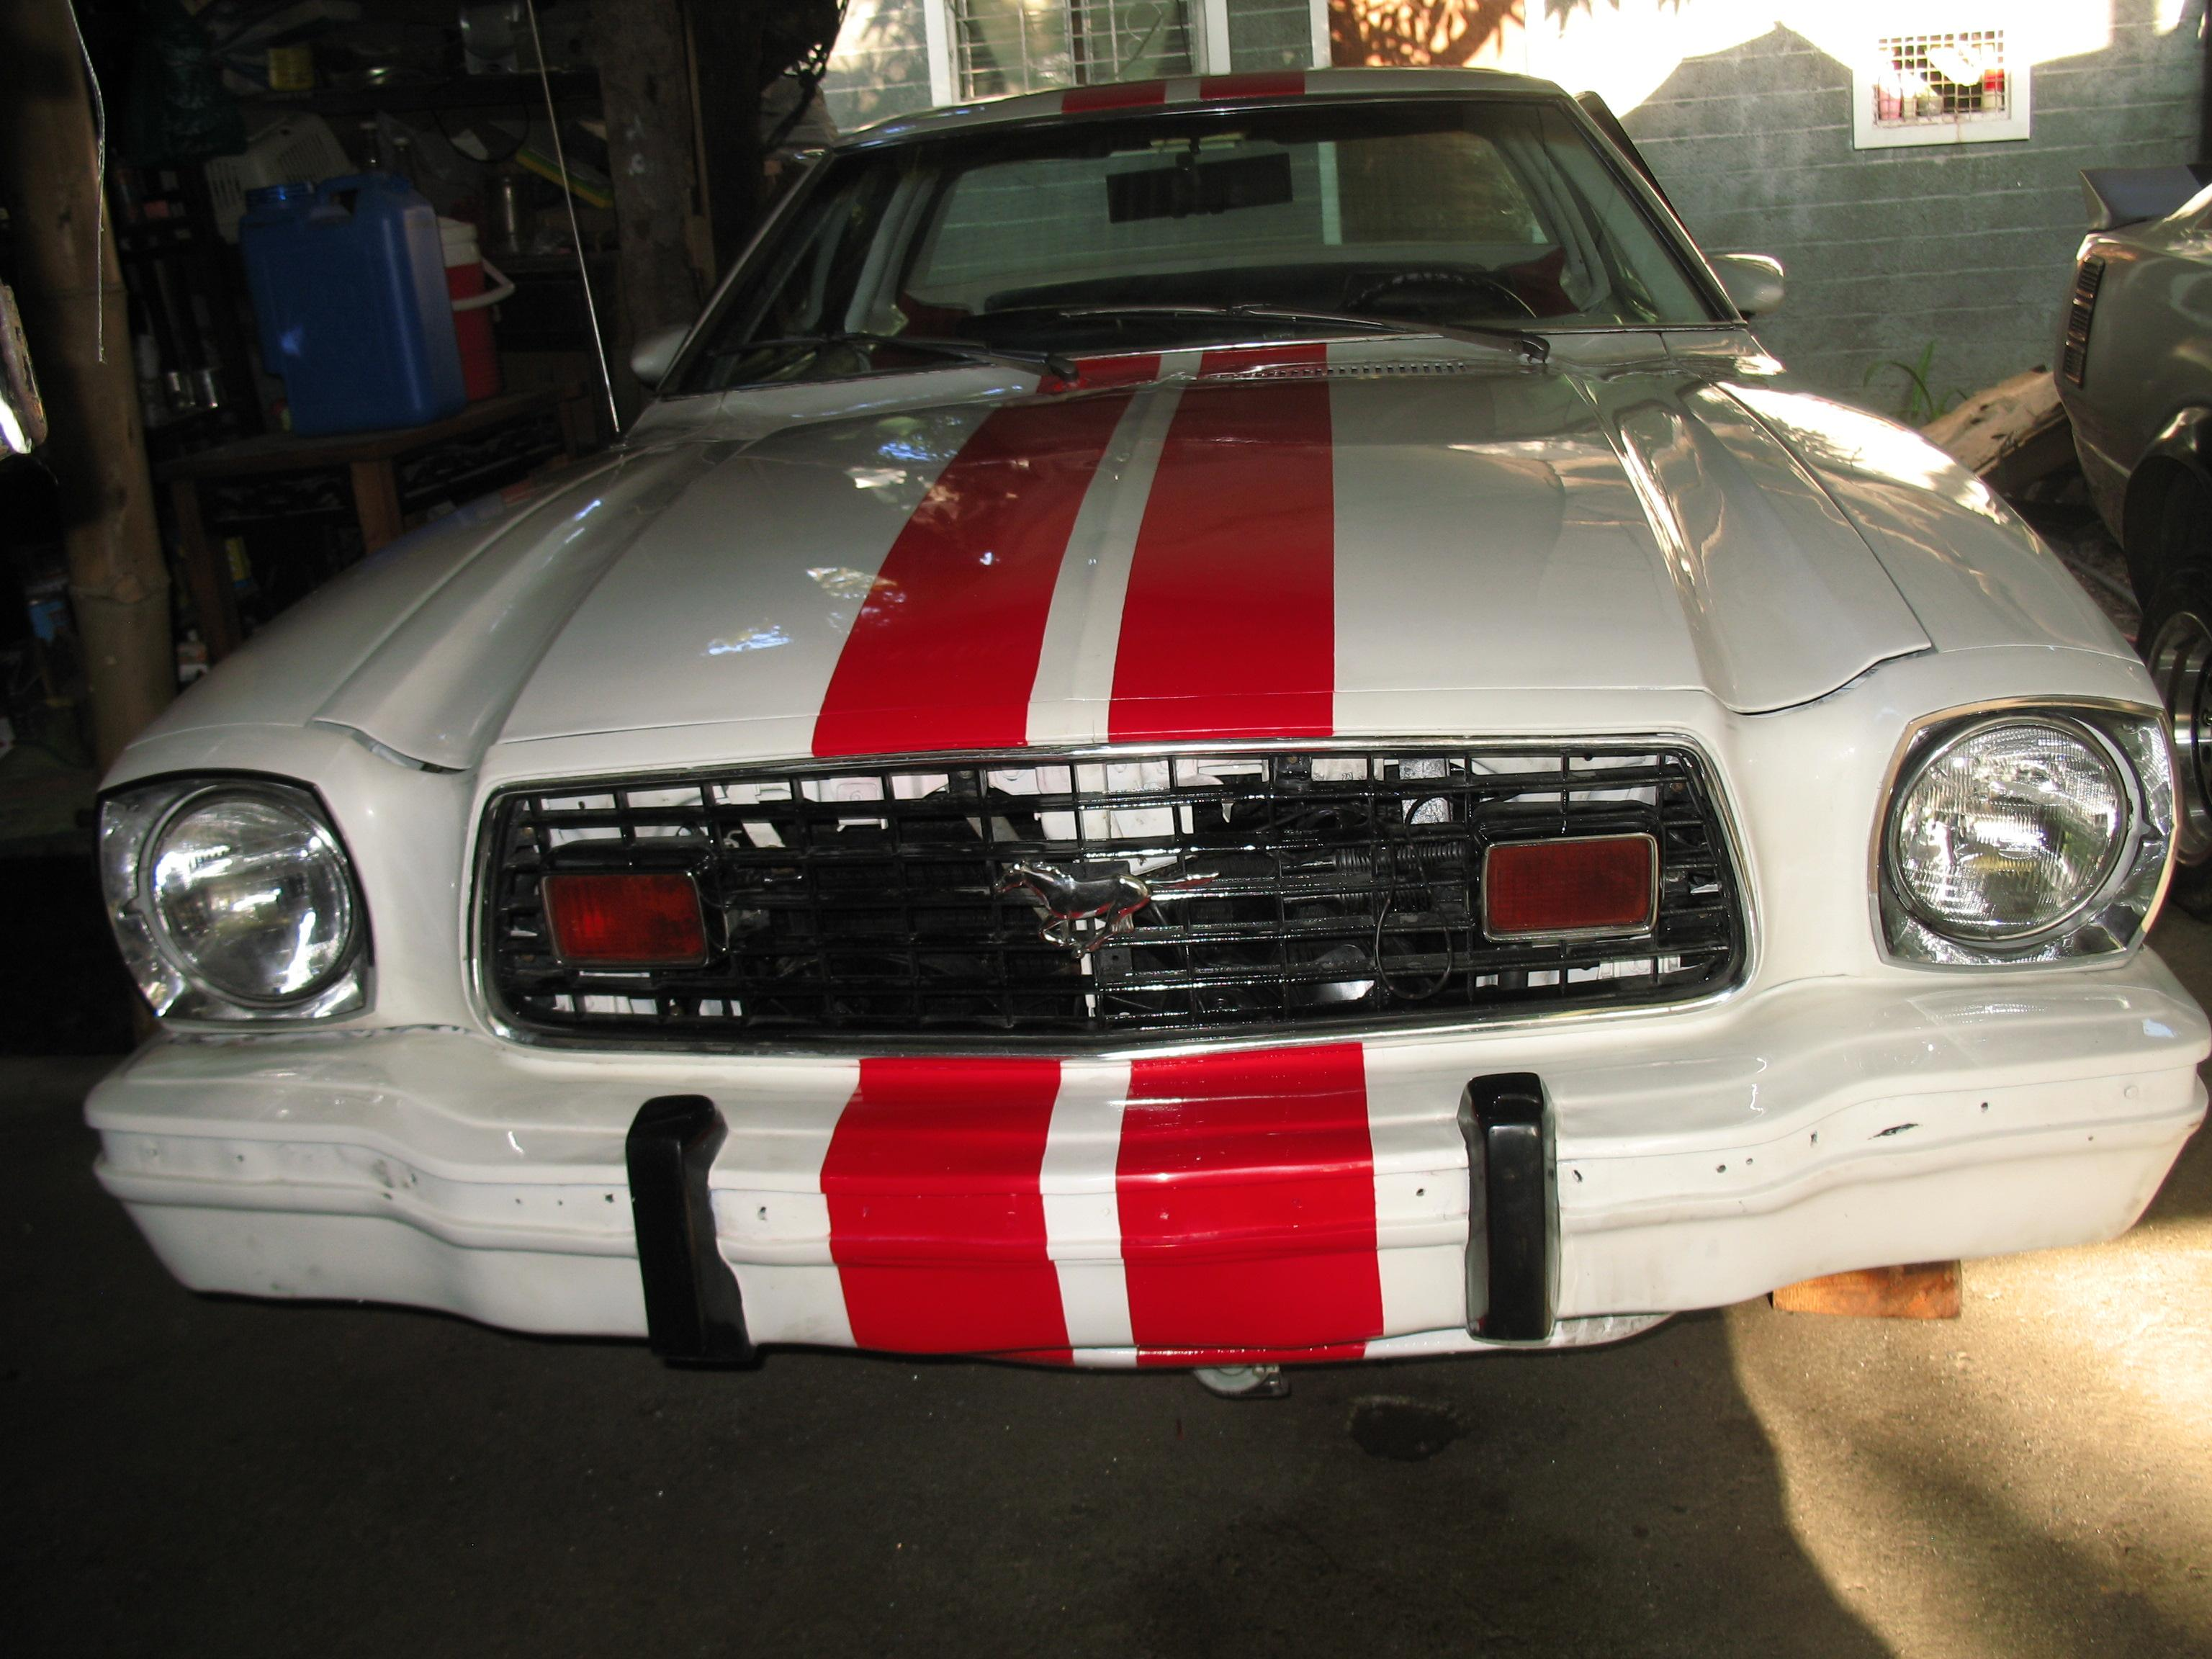 filipinofighter's 1976 Ford Mustang II